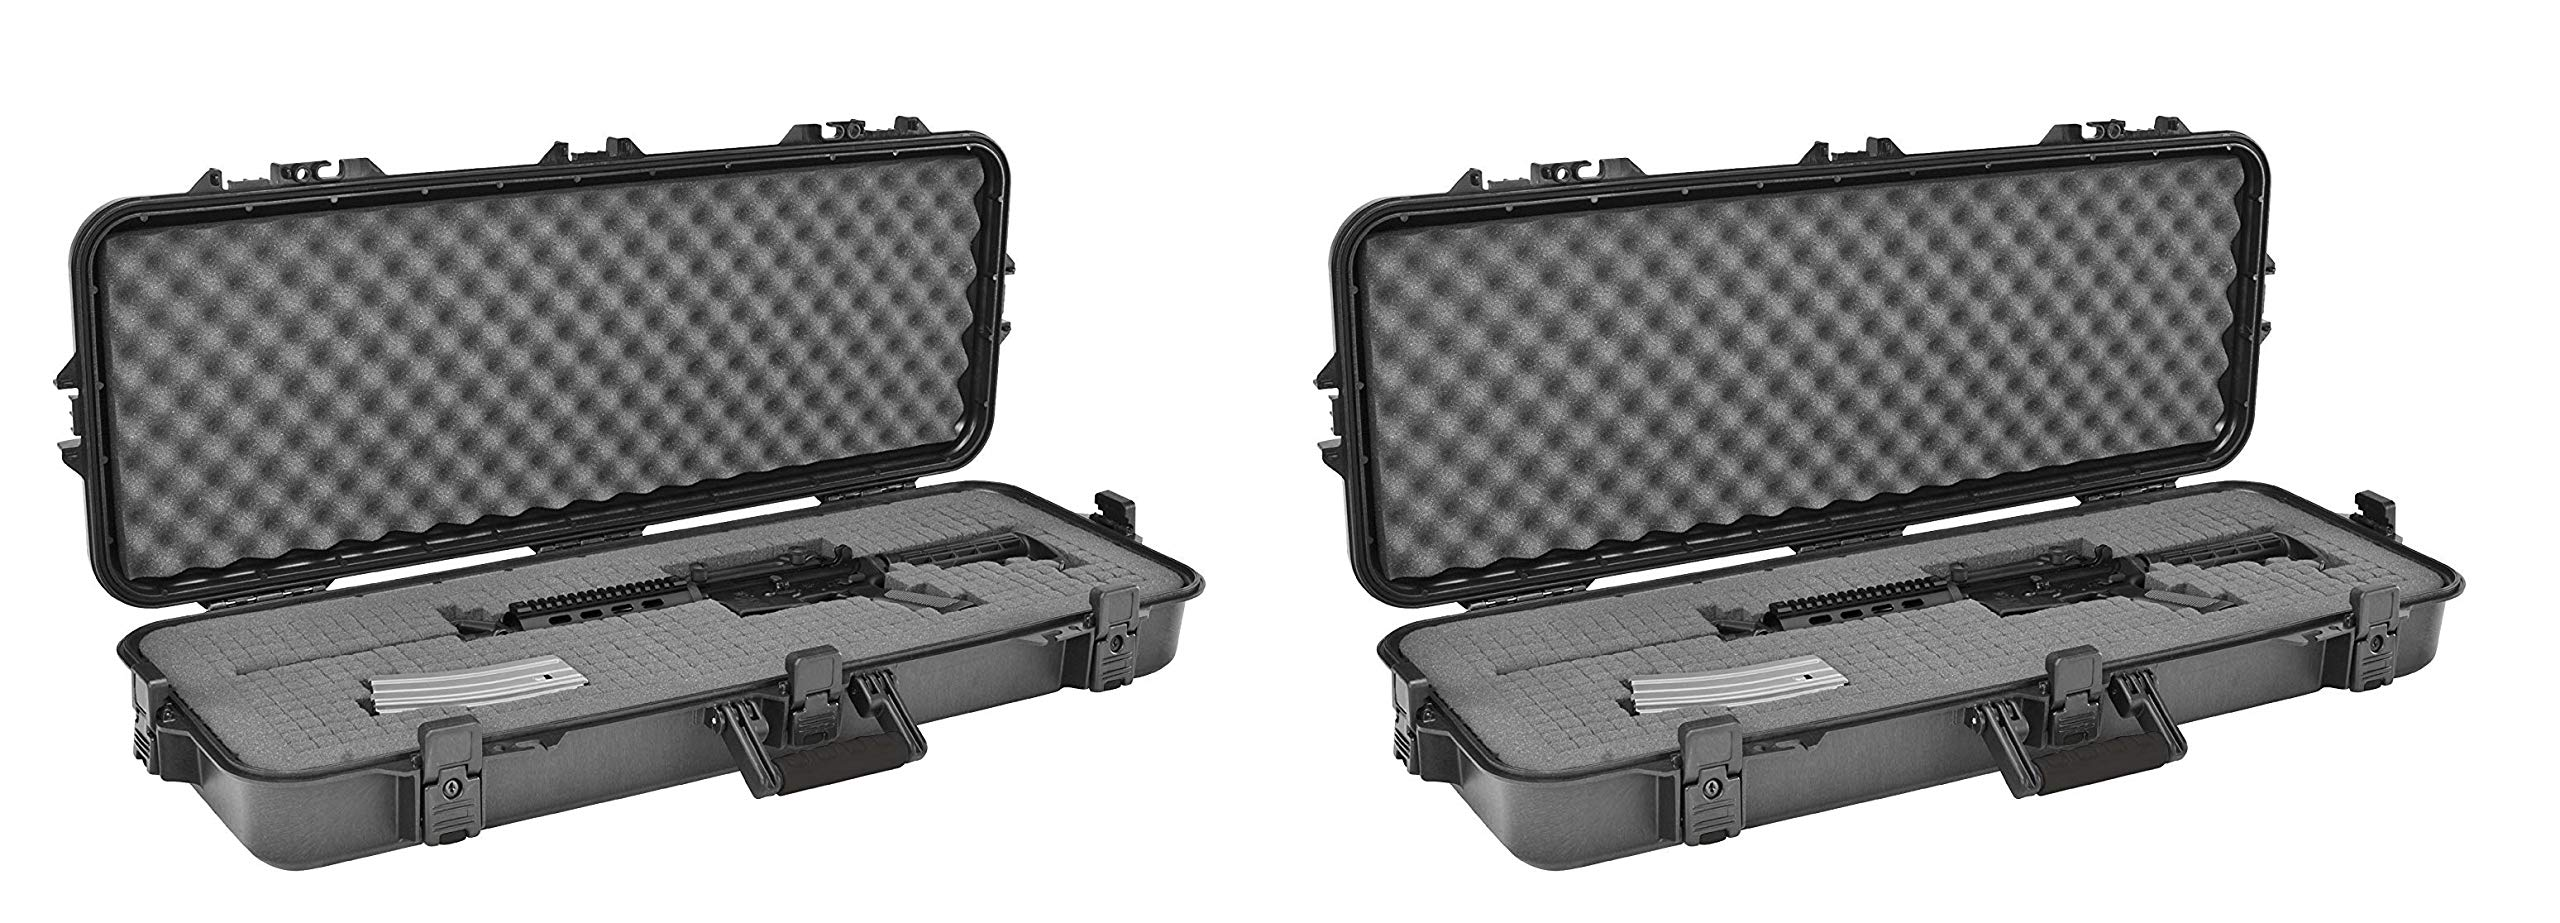 Plano All Weather Tactical Gun Case, 42-Inch (Previous Generation) (Pack of 2) by Plano